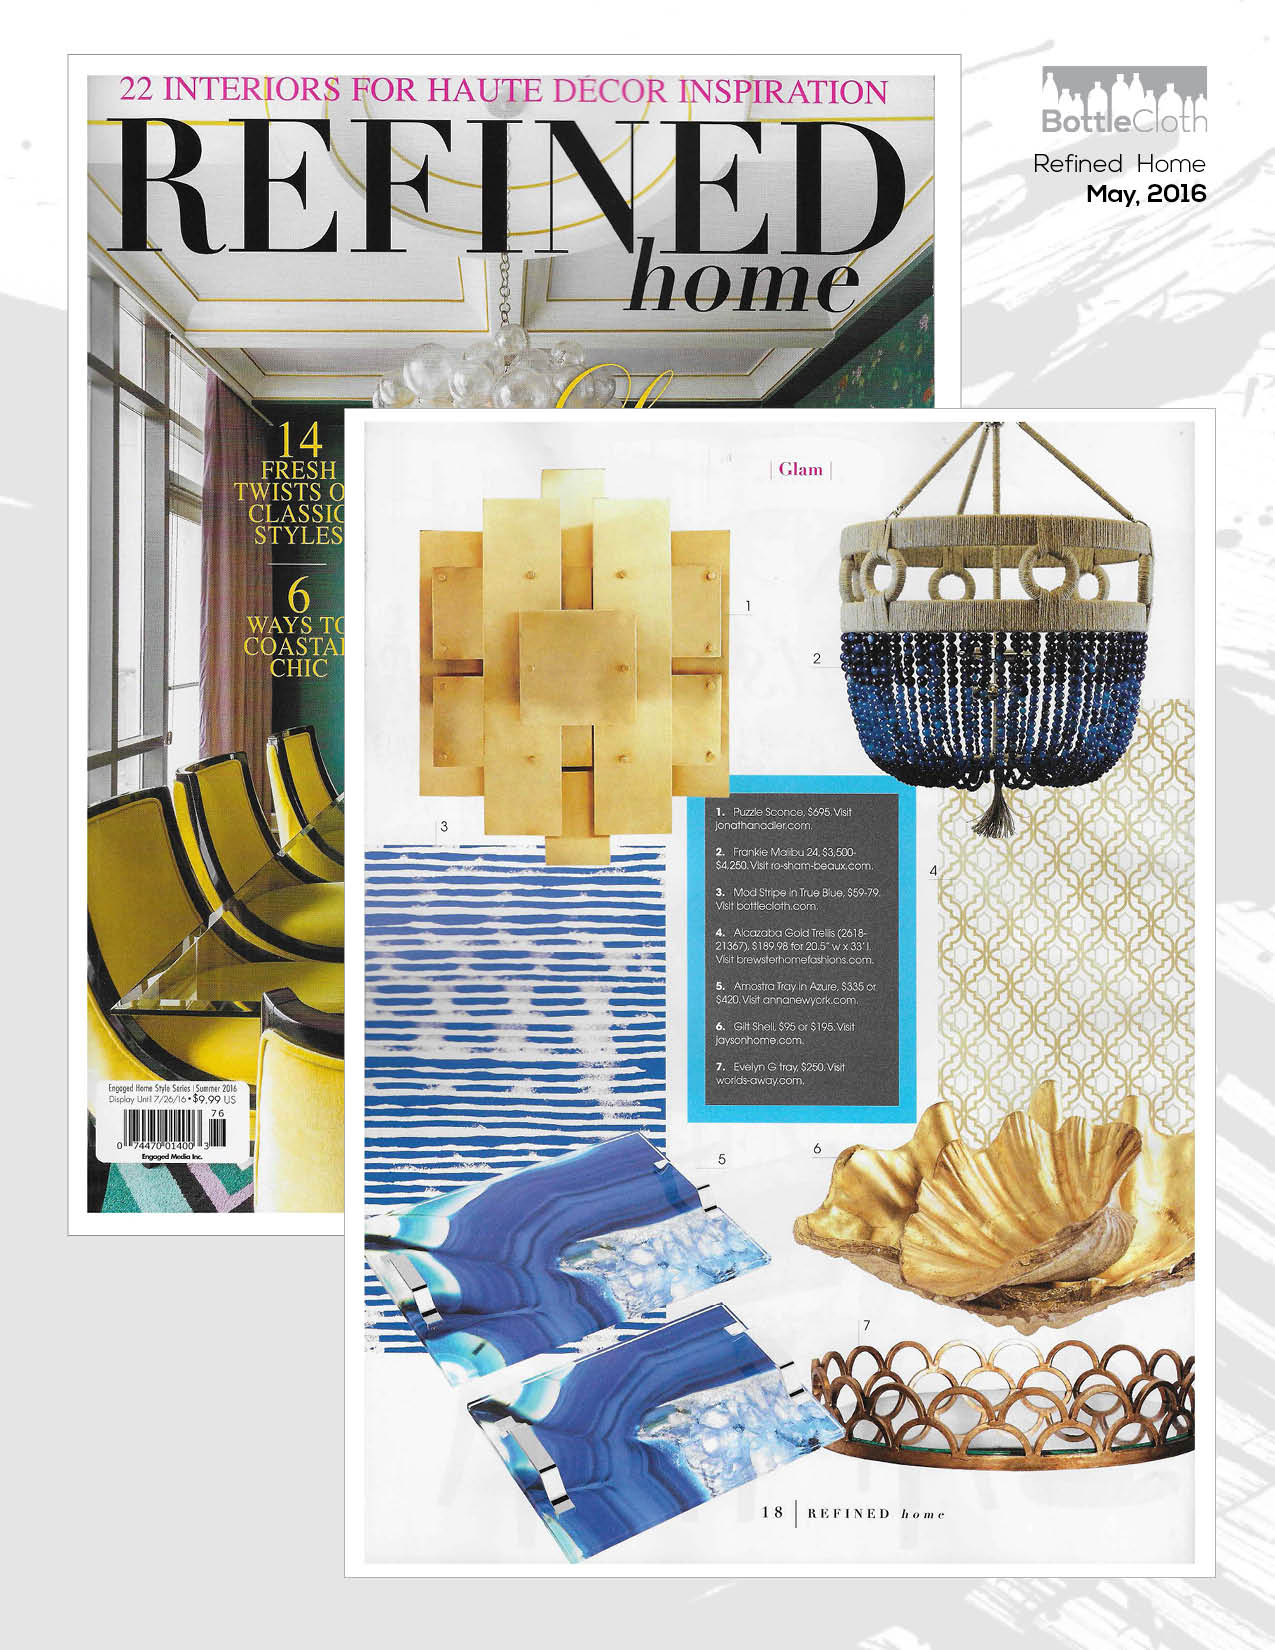 BottleCloth Press - Refined Home